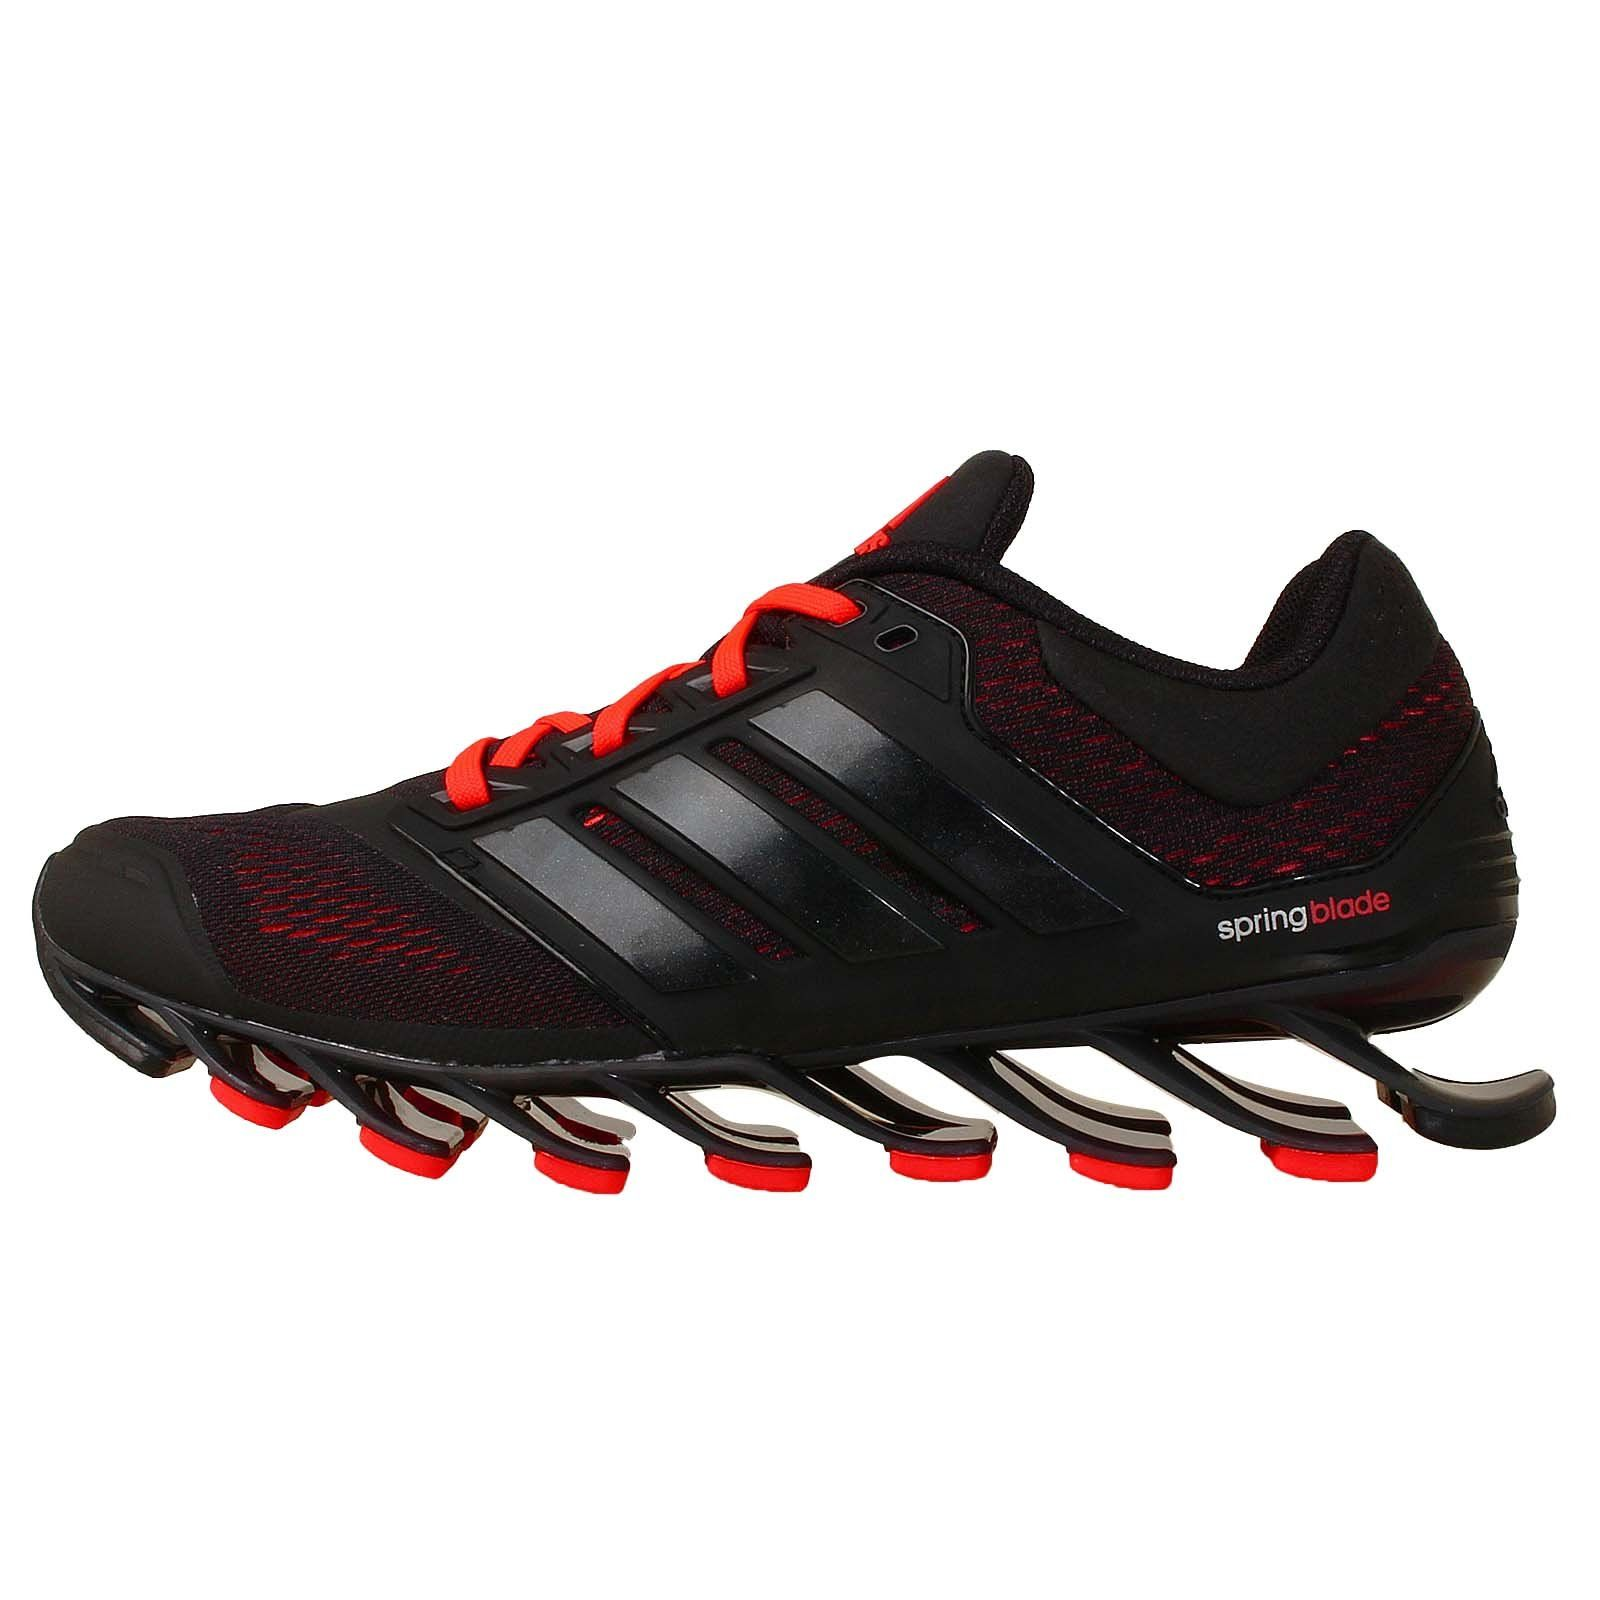 a6f4bccc01fa Amazon.com  adidas Performance Men s Springblade Drive M Running Shoe  Shoes